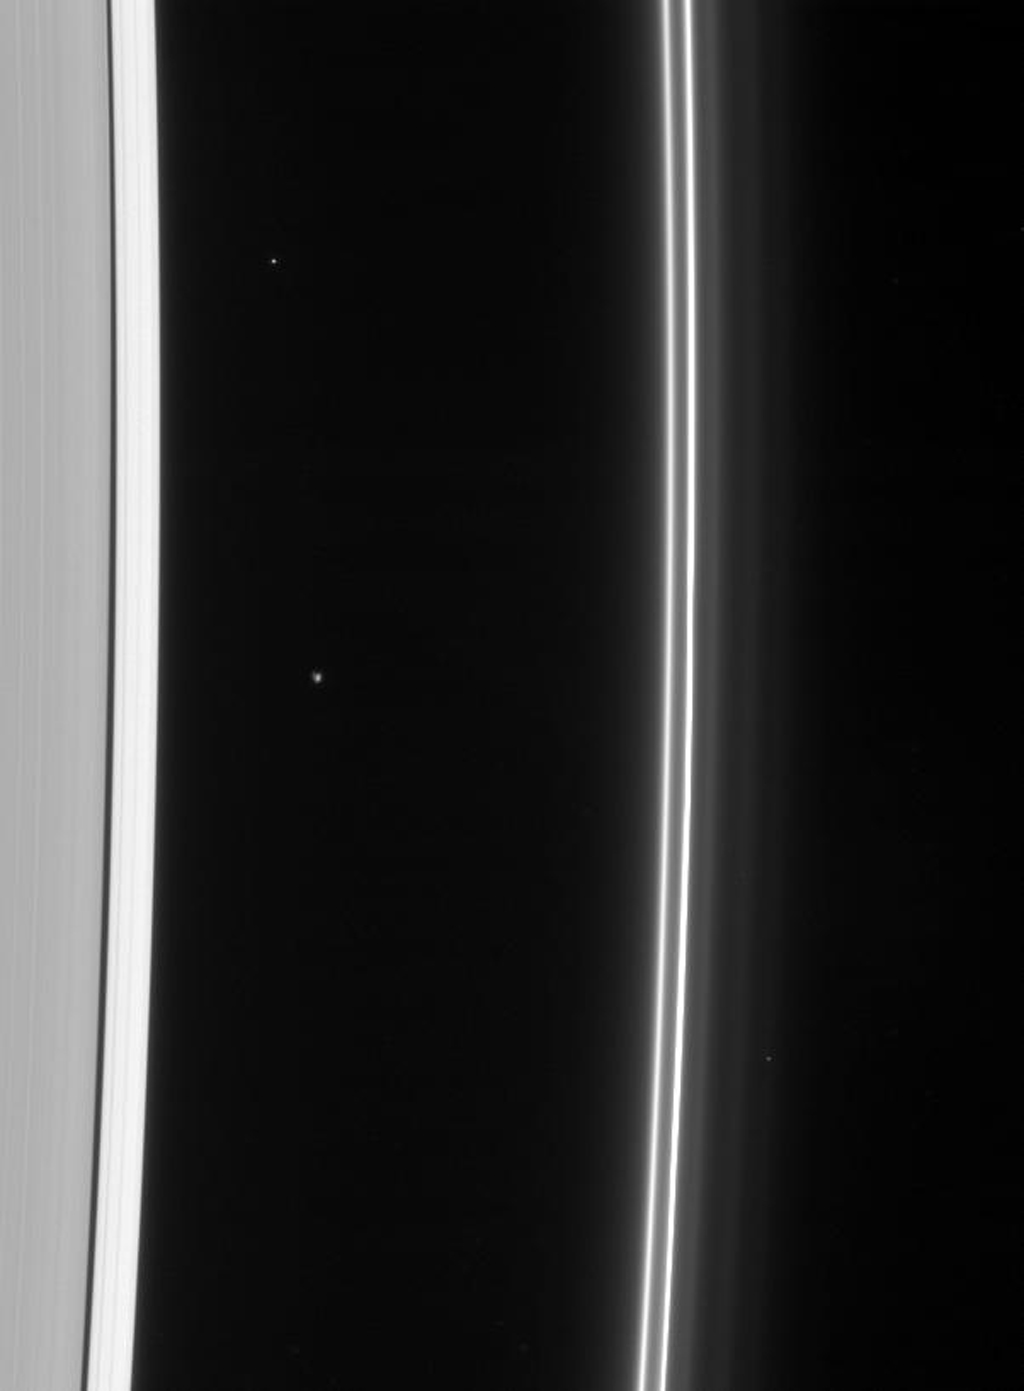 NASA's Cassini spacecraft gazes toward the multiple strands of the ever-changing F ring, also sighting Atlas at its station just beyond the A ring edge. A few faint background stars are visible in this image.